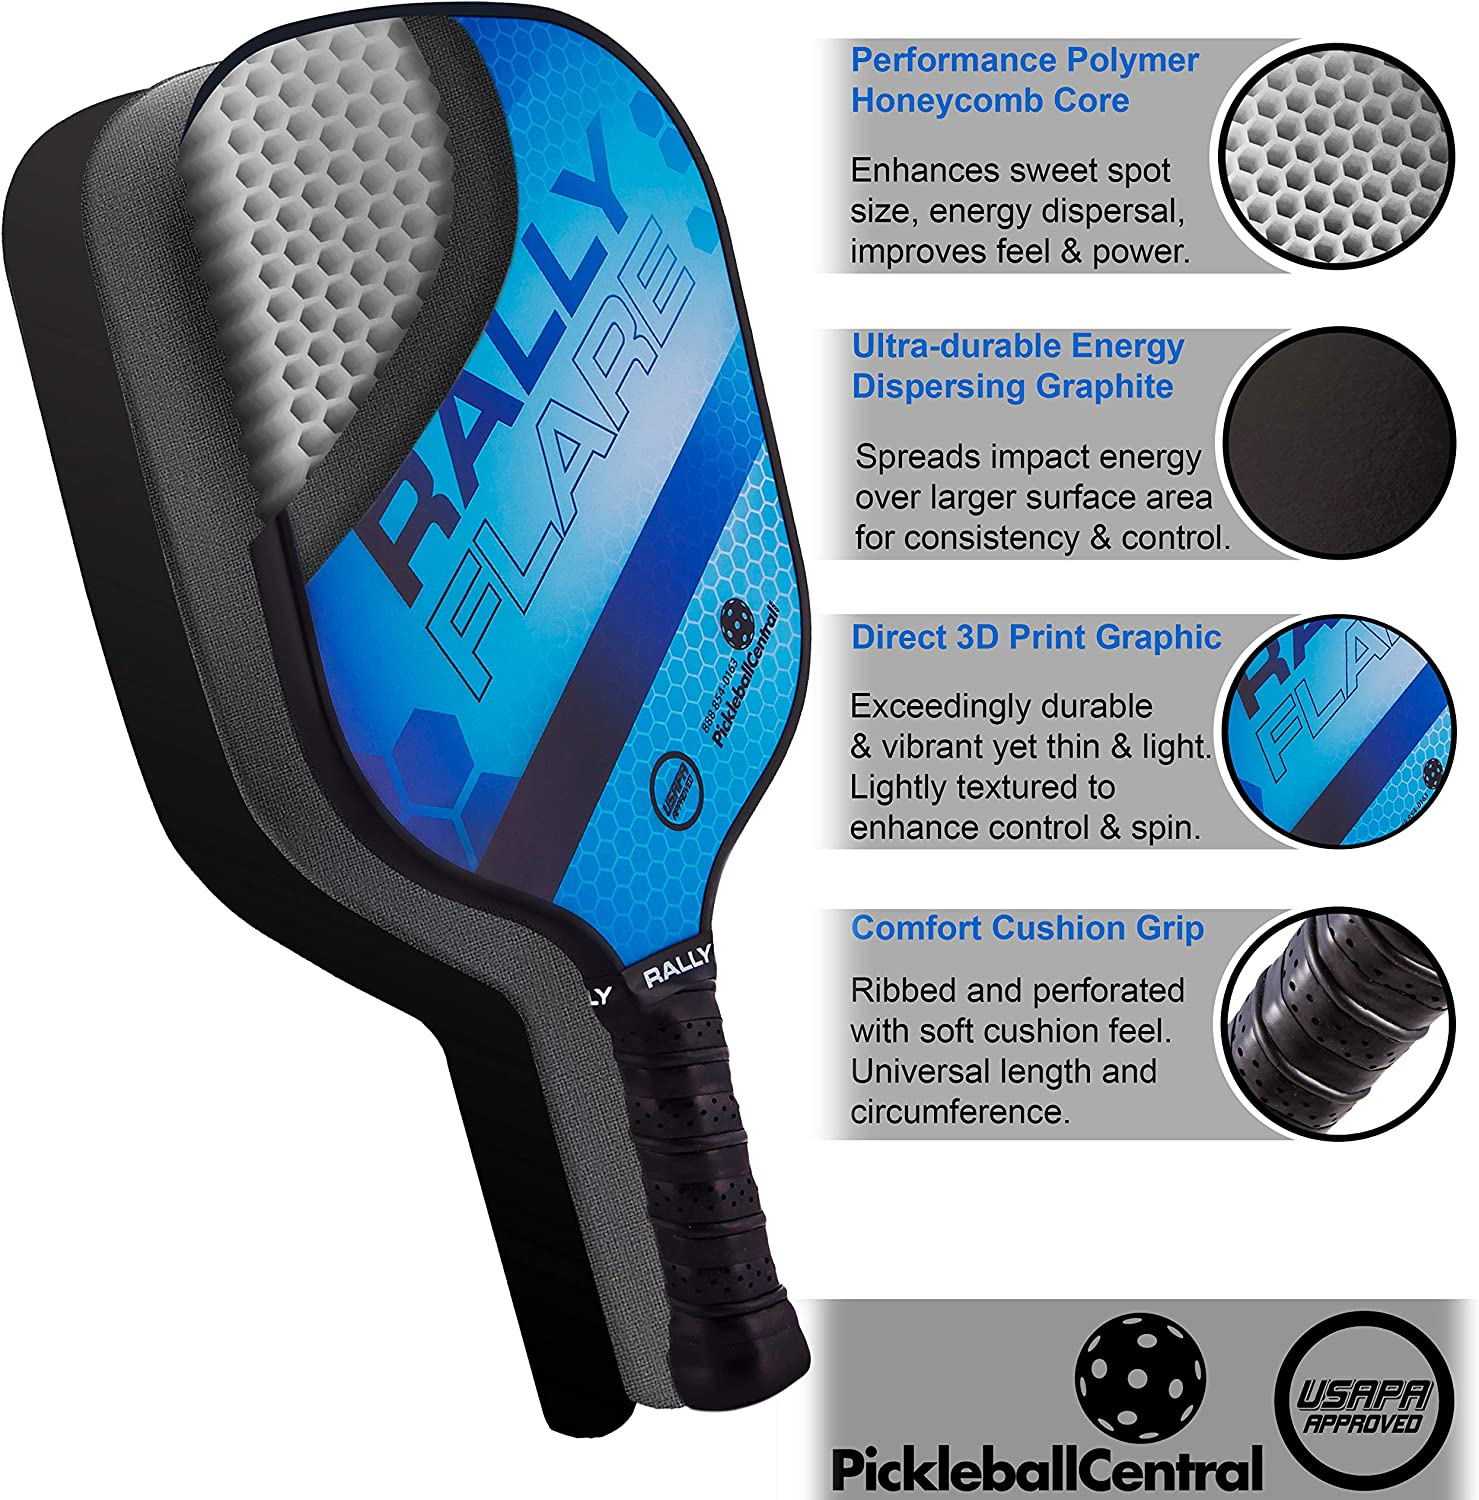 Rally Flare Graphite Pickleball Paddle | Polymer Honeycomb Core, Graphite Hybrid Composite Face | Lightweight